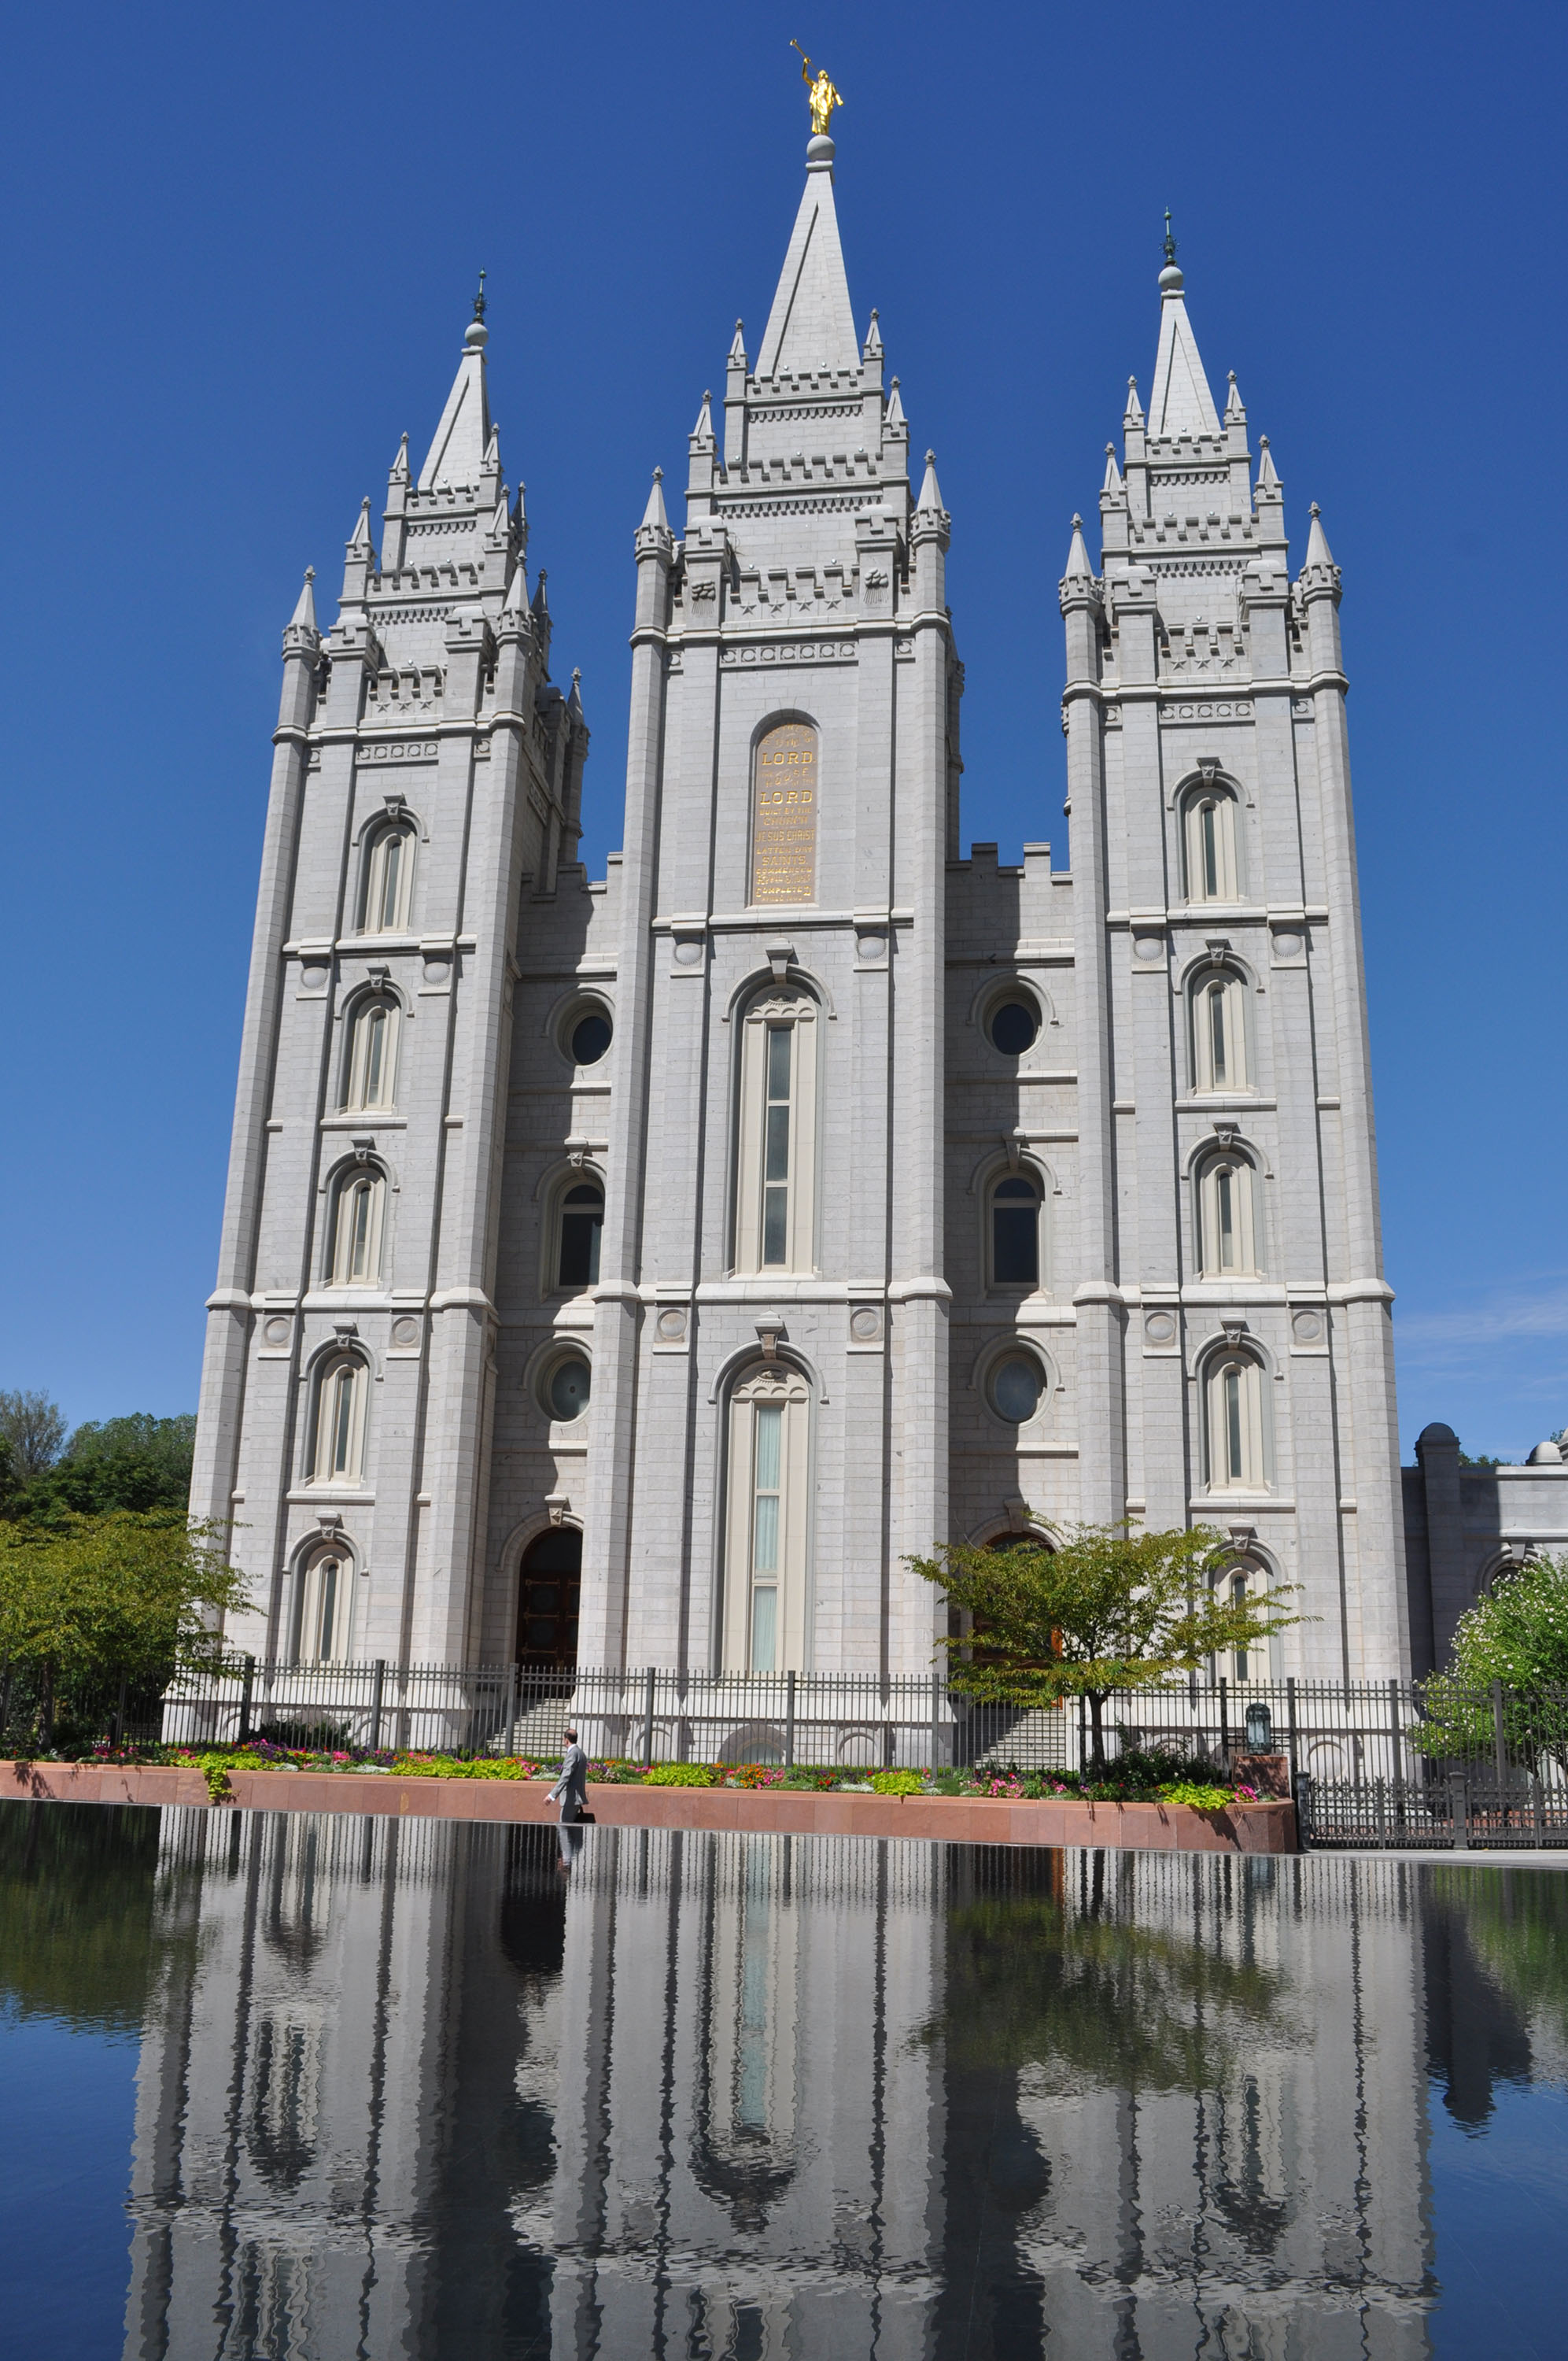 Salt lake city temple utah architecture revived for Architecture firms salt lake city